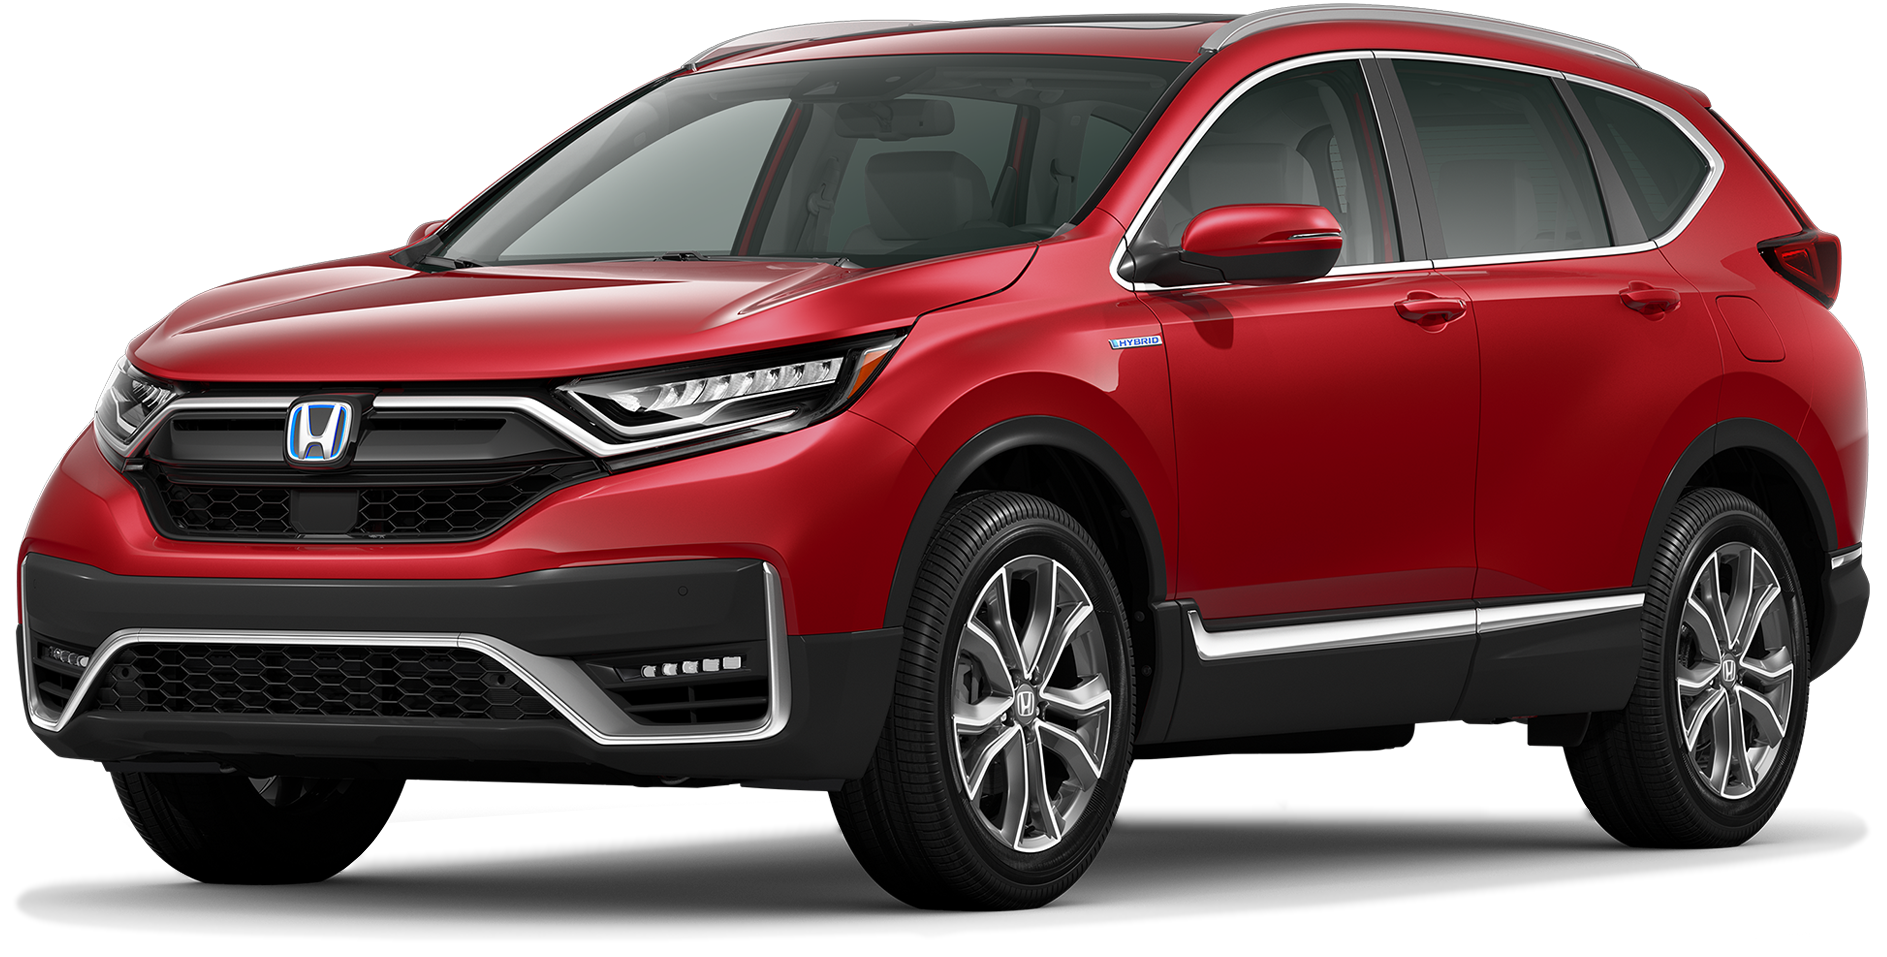 http://images.dealer.com/ddc/vehicles/2020/Honda/CR-V%20Hybrid/SUV/trim_Touring_f3ac13/perspective/front-left/2020_76.png